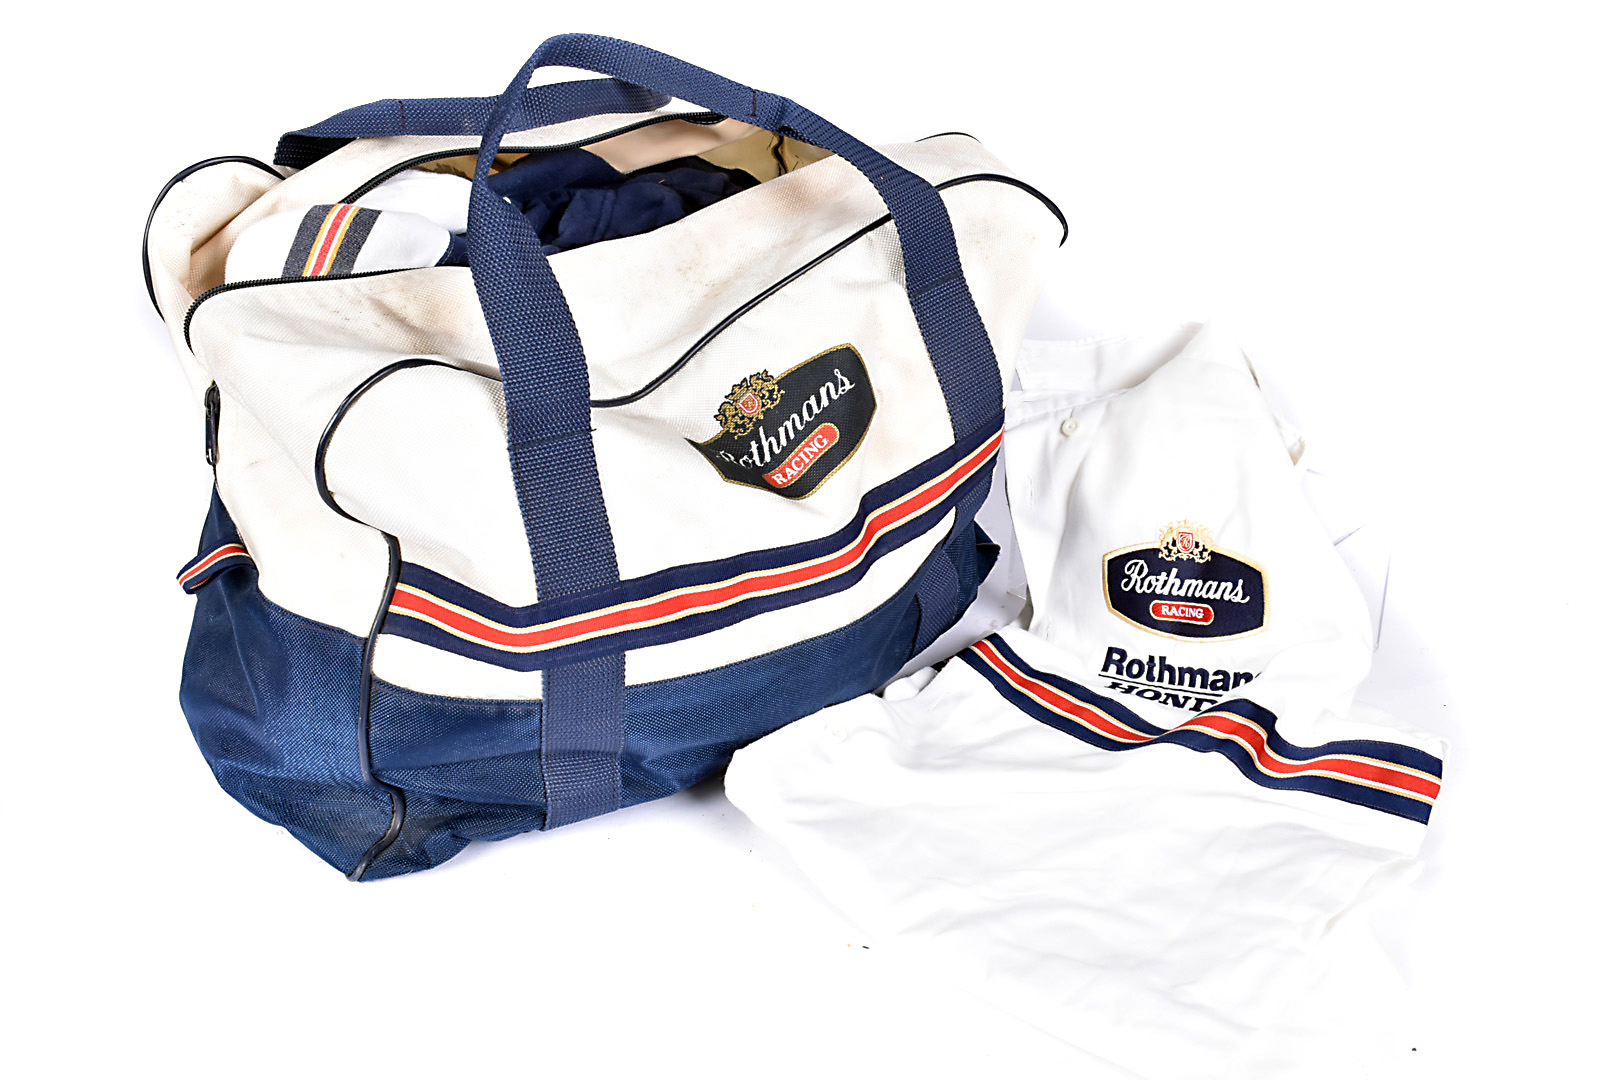 An assortment of Rothman Racing bags and clothing, comprising three various sized holdalls, a